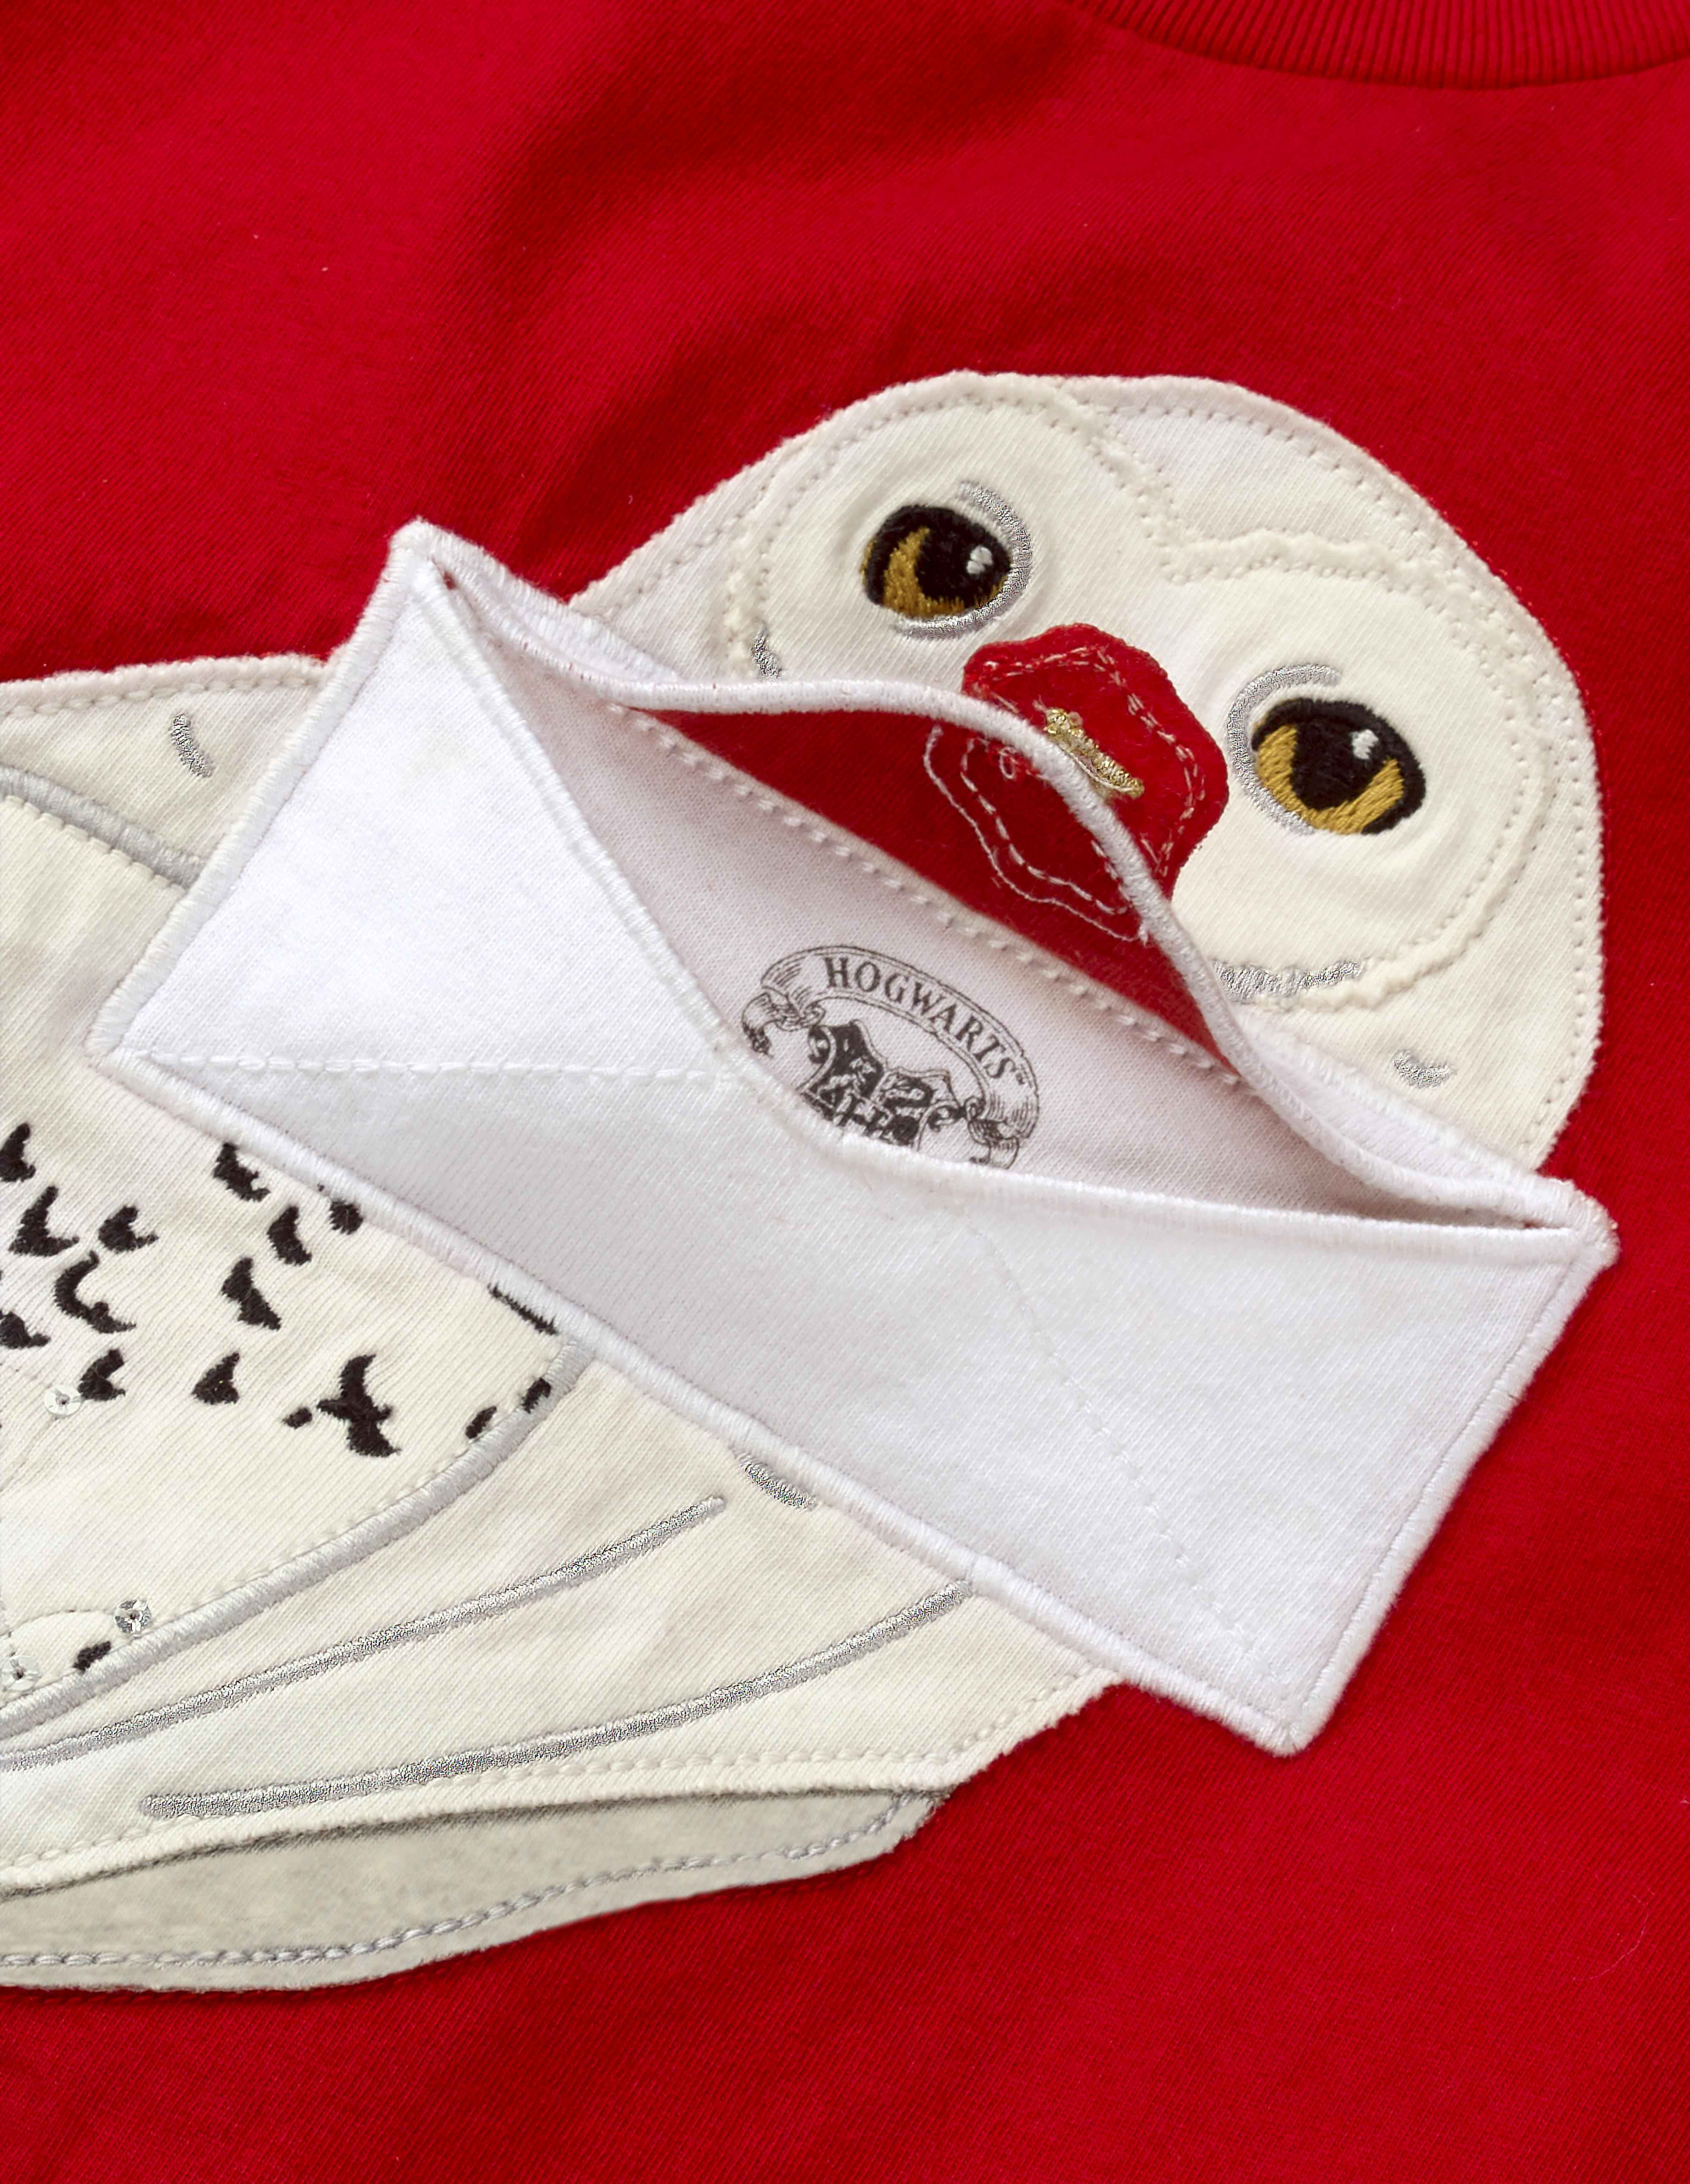 This close-up of the Mini Boden Hedwig Appliqué T-shirt in red shows how the flap of the envelope containing the Hogwarts acceptance letter lifts up to reveal the top of the Hogwarts seal. The shirt retails at £22.